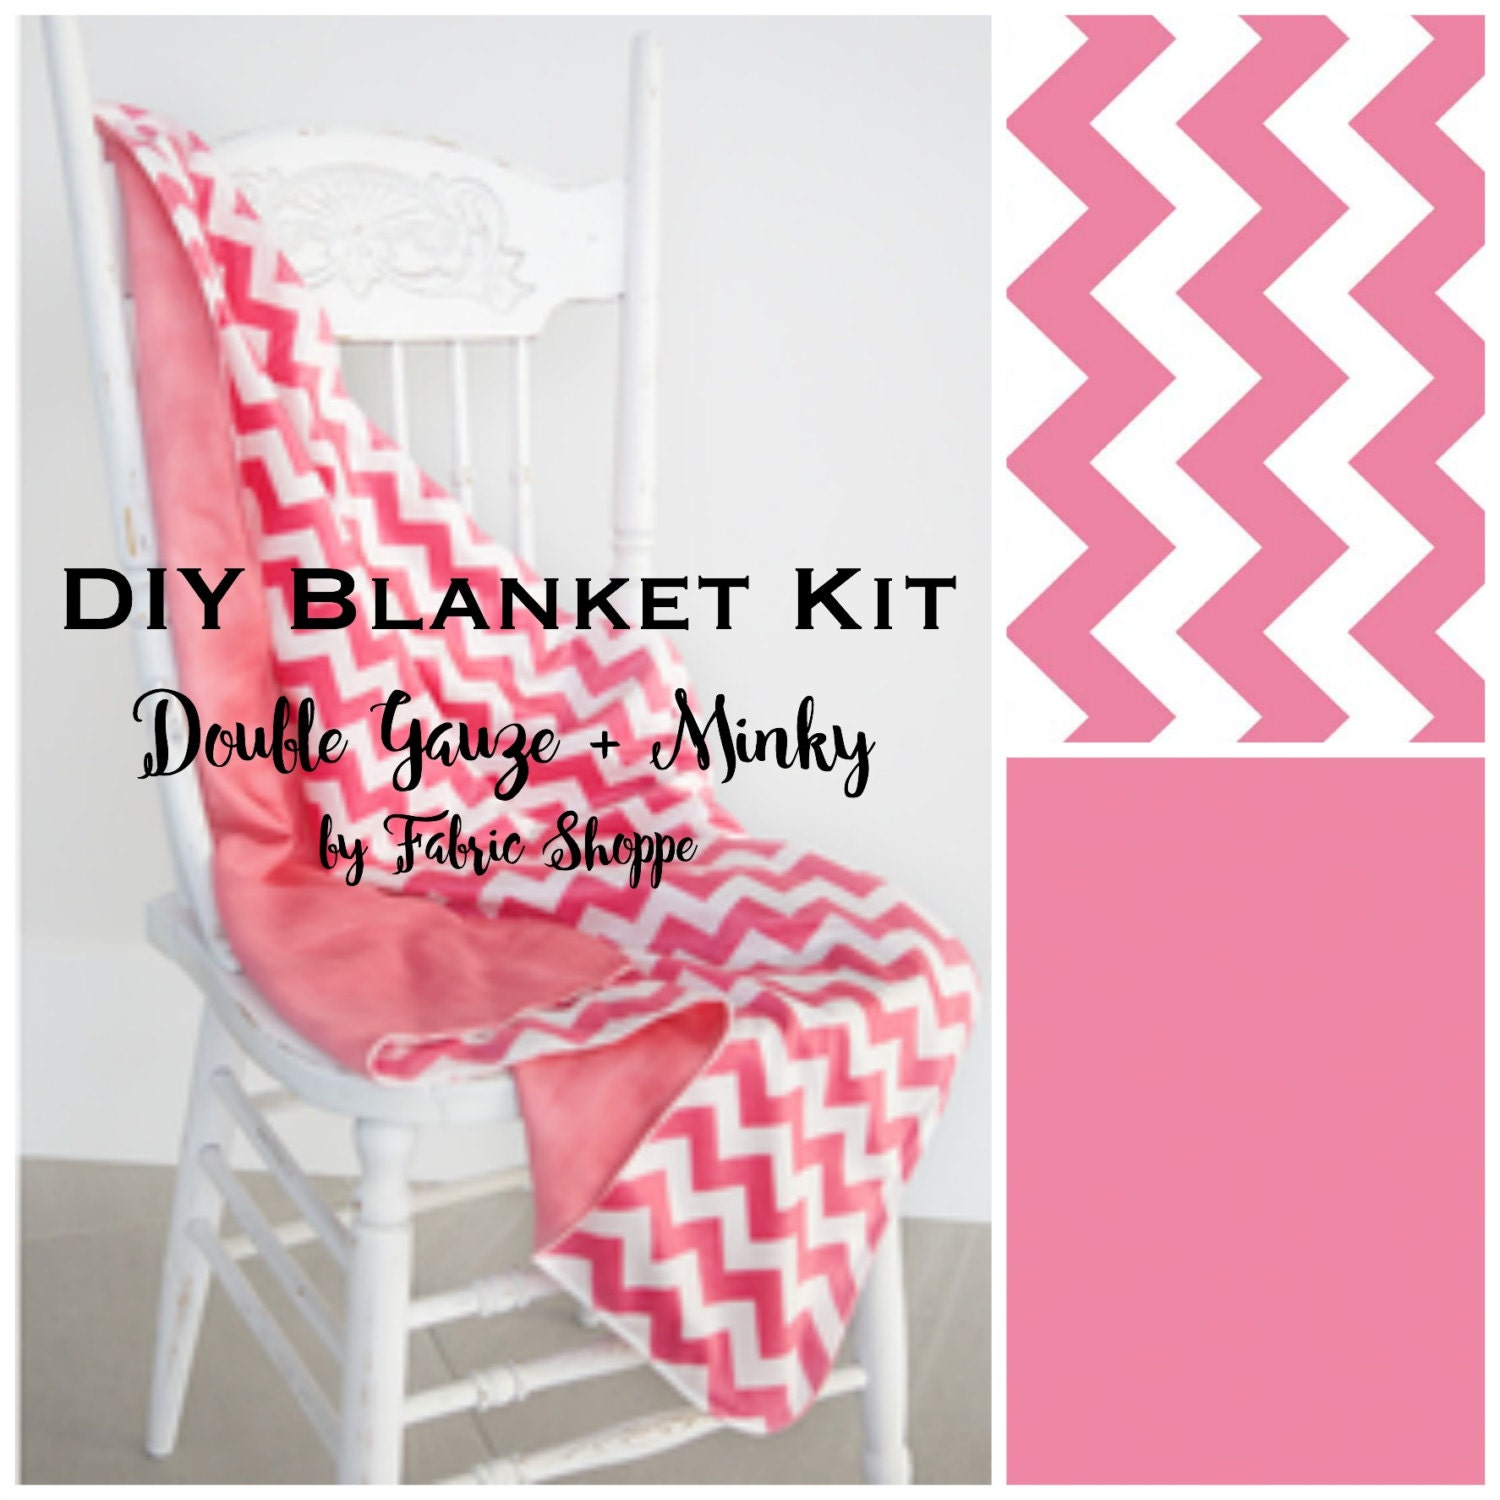 Diy baby blanket kit beginner sewing kit quilt kit double gauze diy baby blanket kit beginner sewing kit quilt kit double gauze fabric pink fabric chevron baby fabric baby gift make it yourself solutioingenieria Images